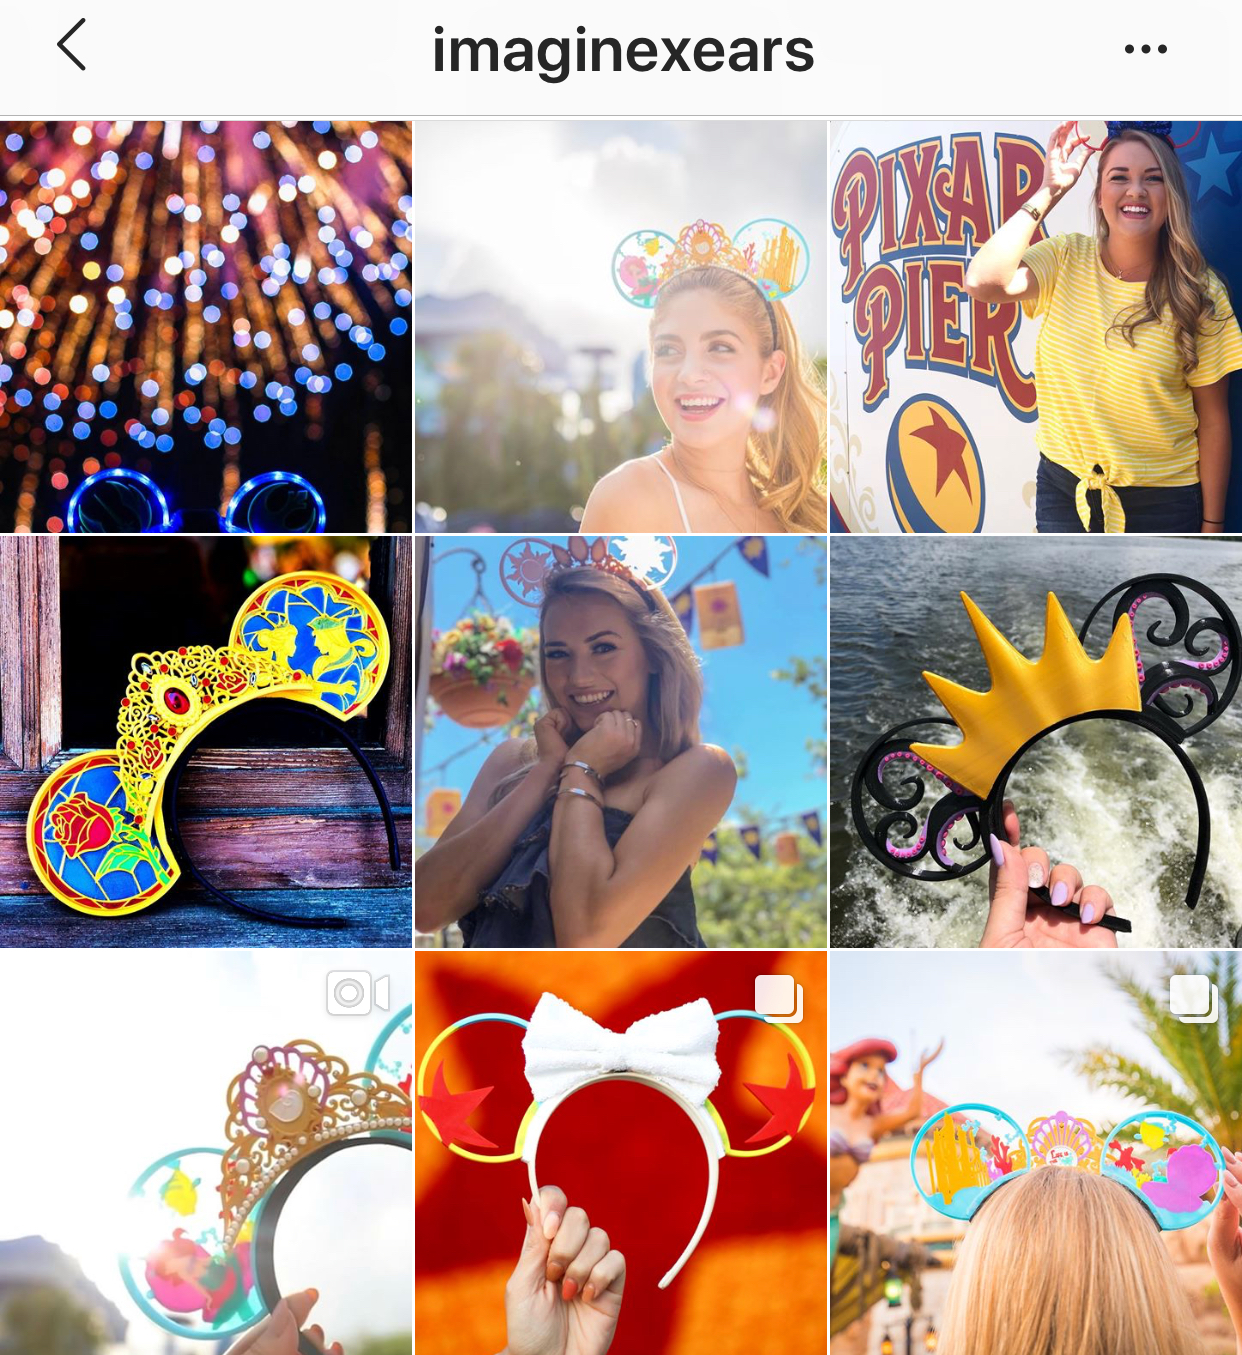 Imaginex Ears instragram